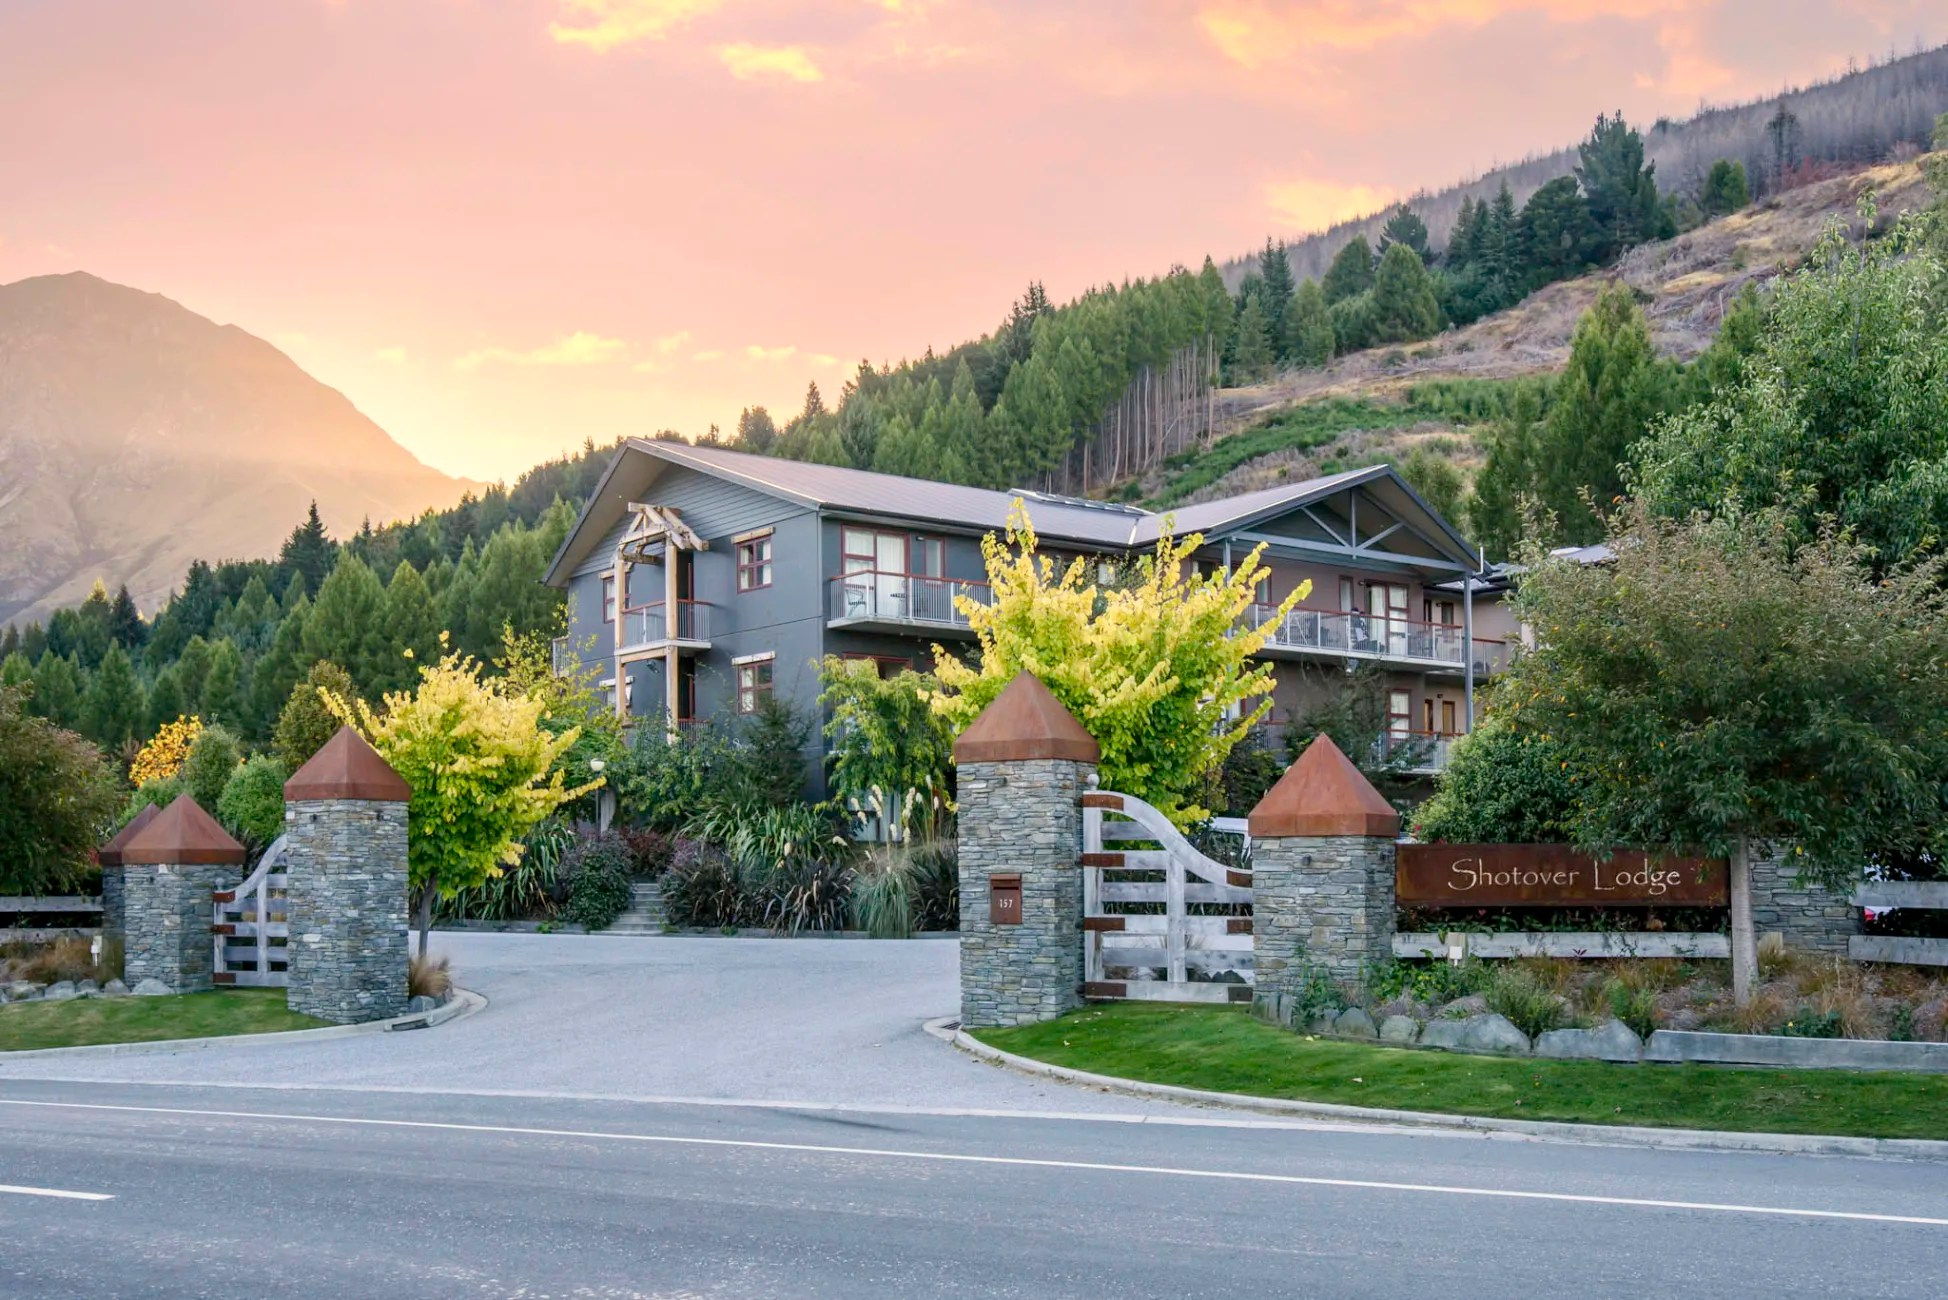 Hotel Shotover Lodge Queenstown Trivago Co Nz